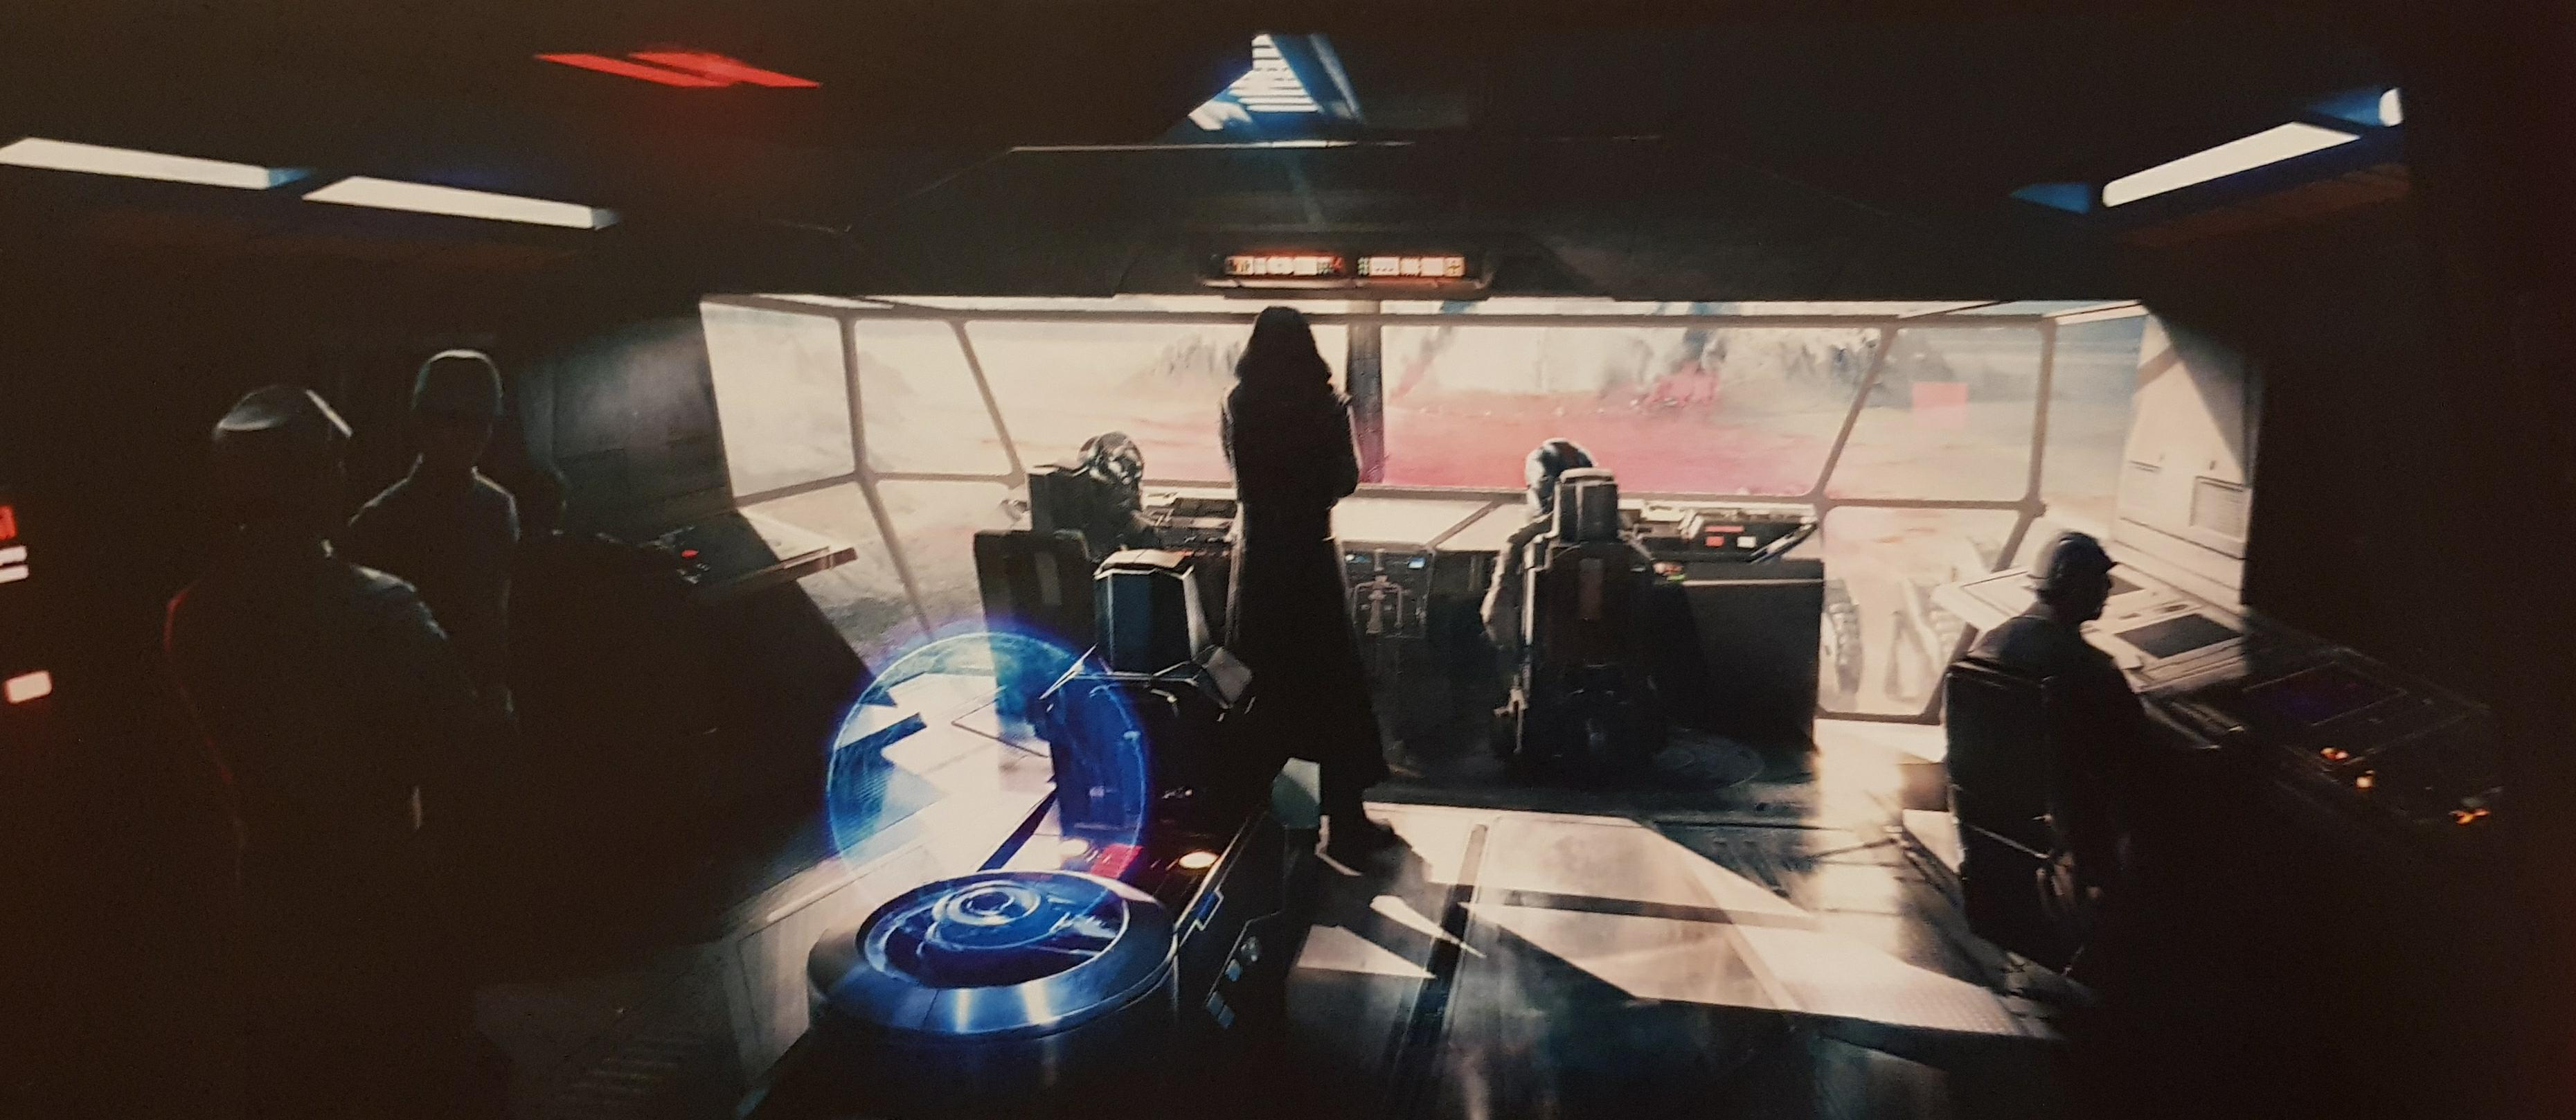 Stunning Concept Art For The Last Jedi Paints Kylo Ren And Snoke In A Different Light